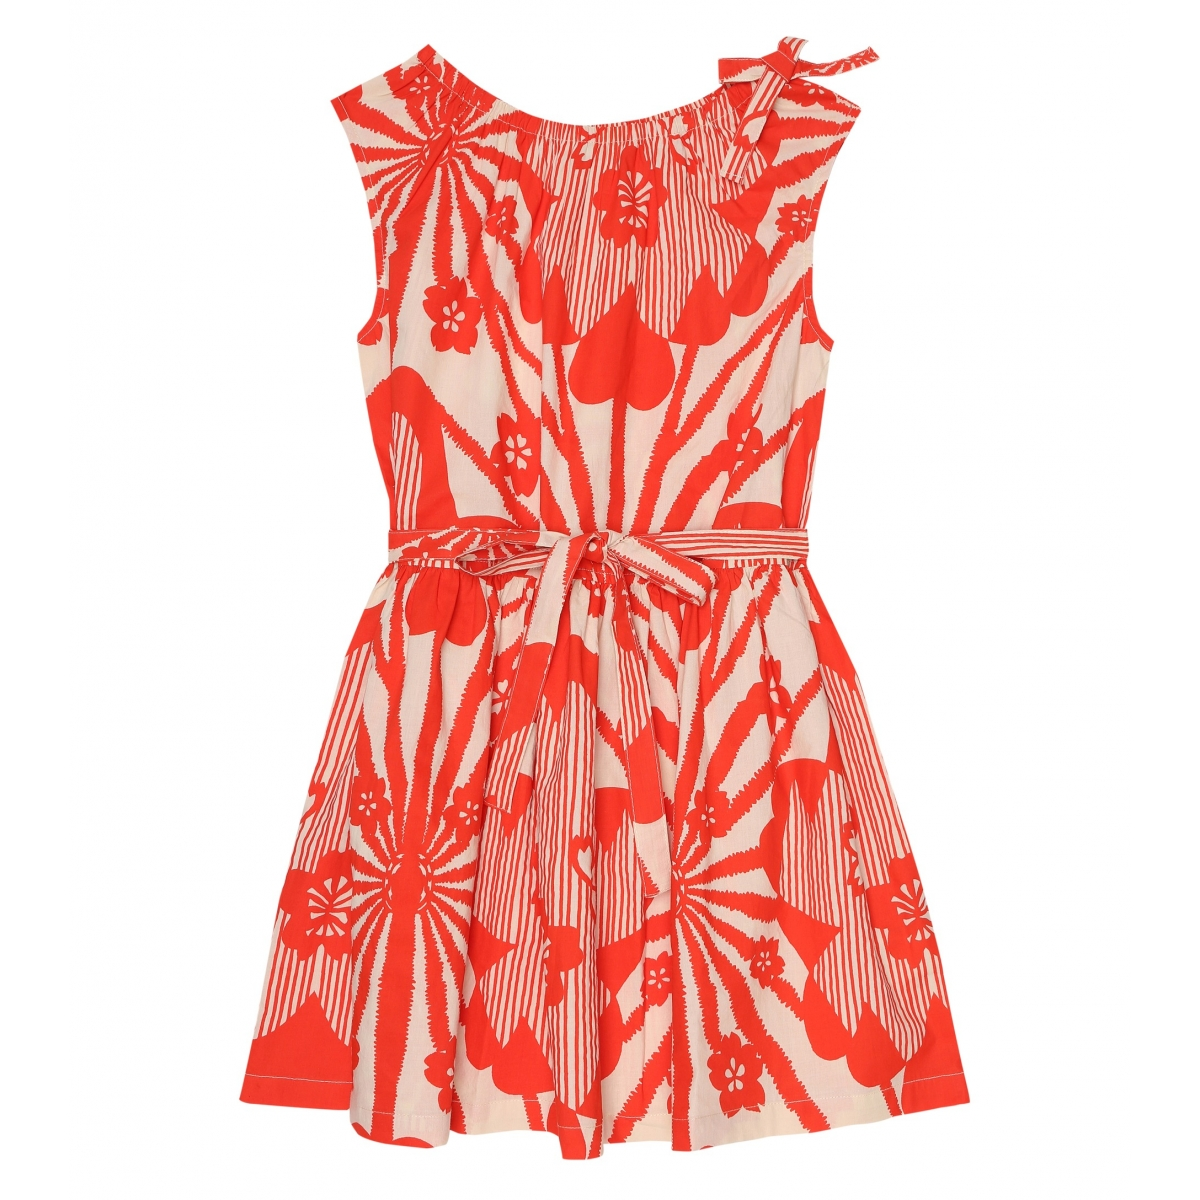 Dress Notting Hill Red